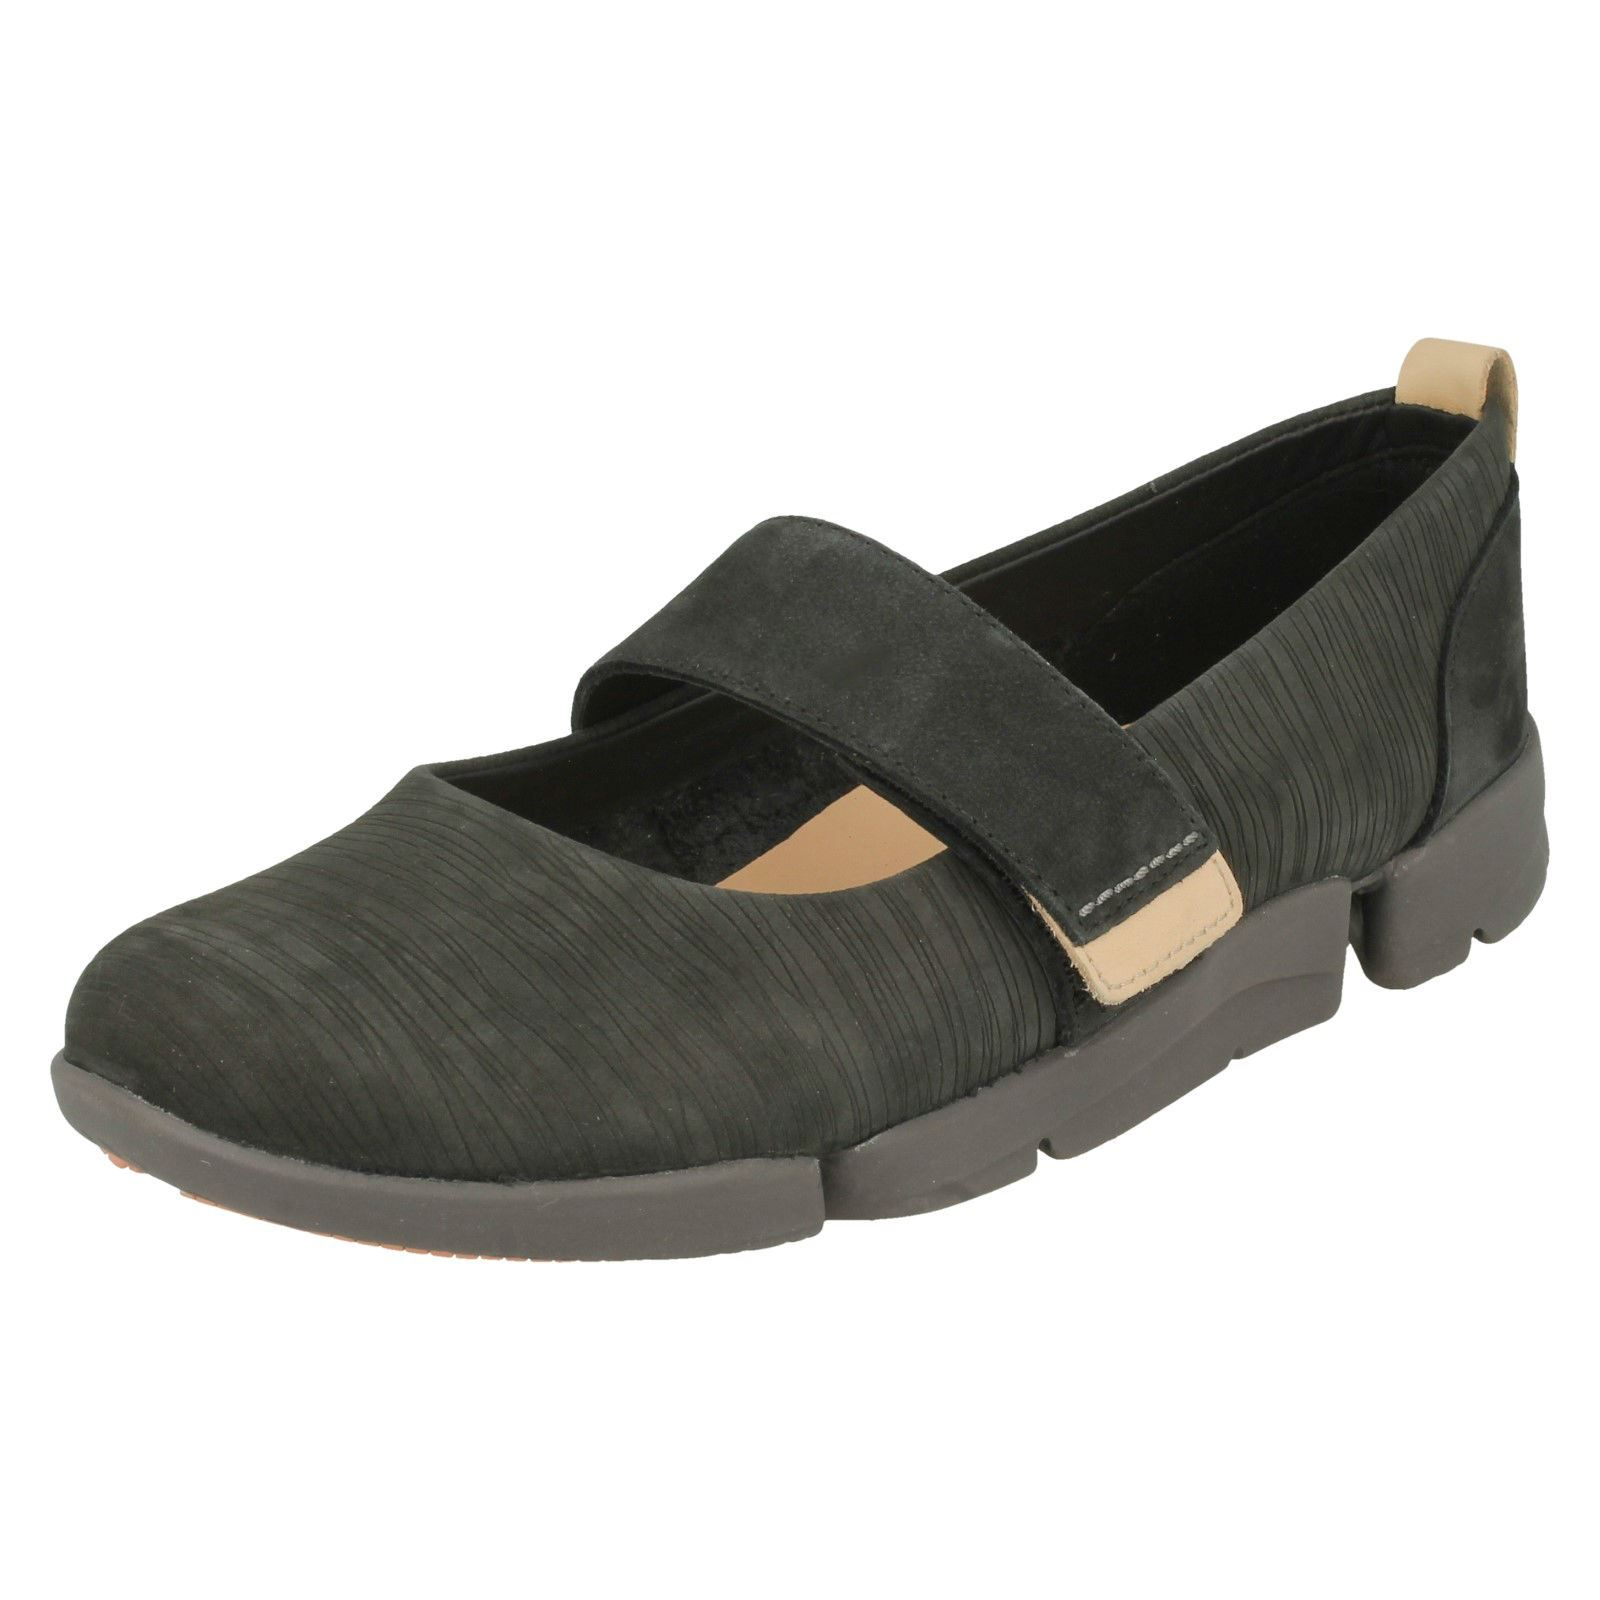 About Casual Details Clarks Sporty Mary Jane Tri Ladies Carrie Style Trigenic Flat Shoe pUzMSV